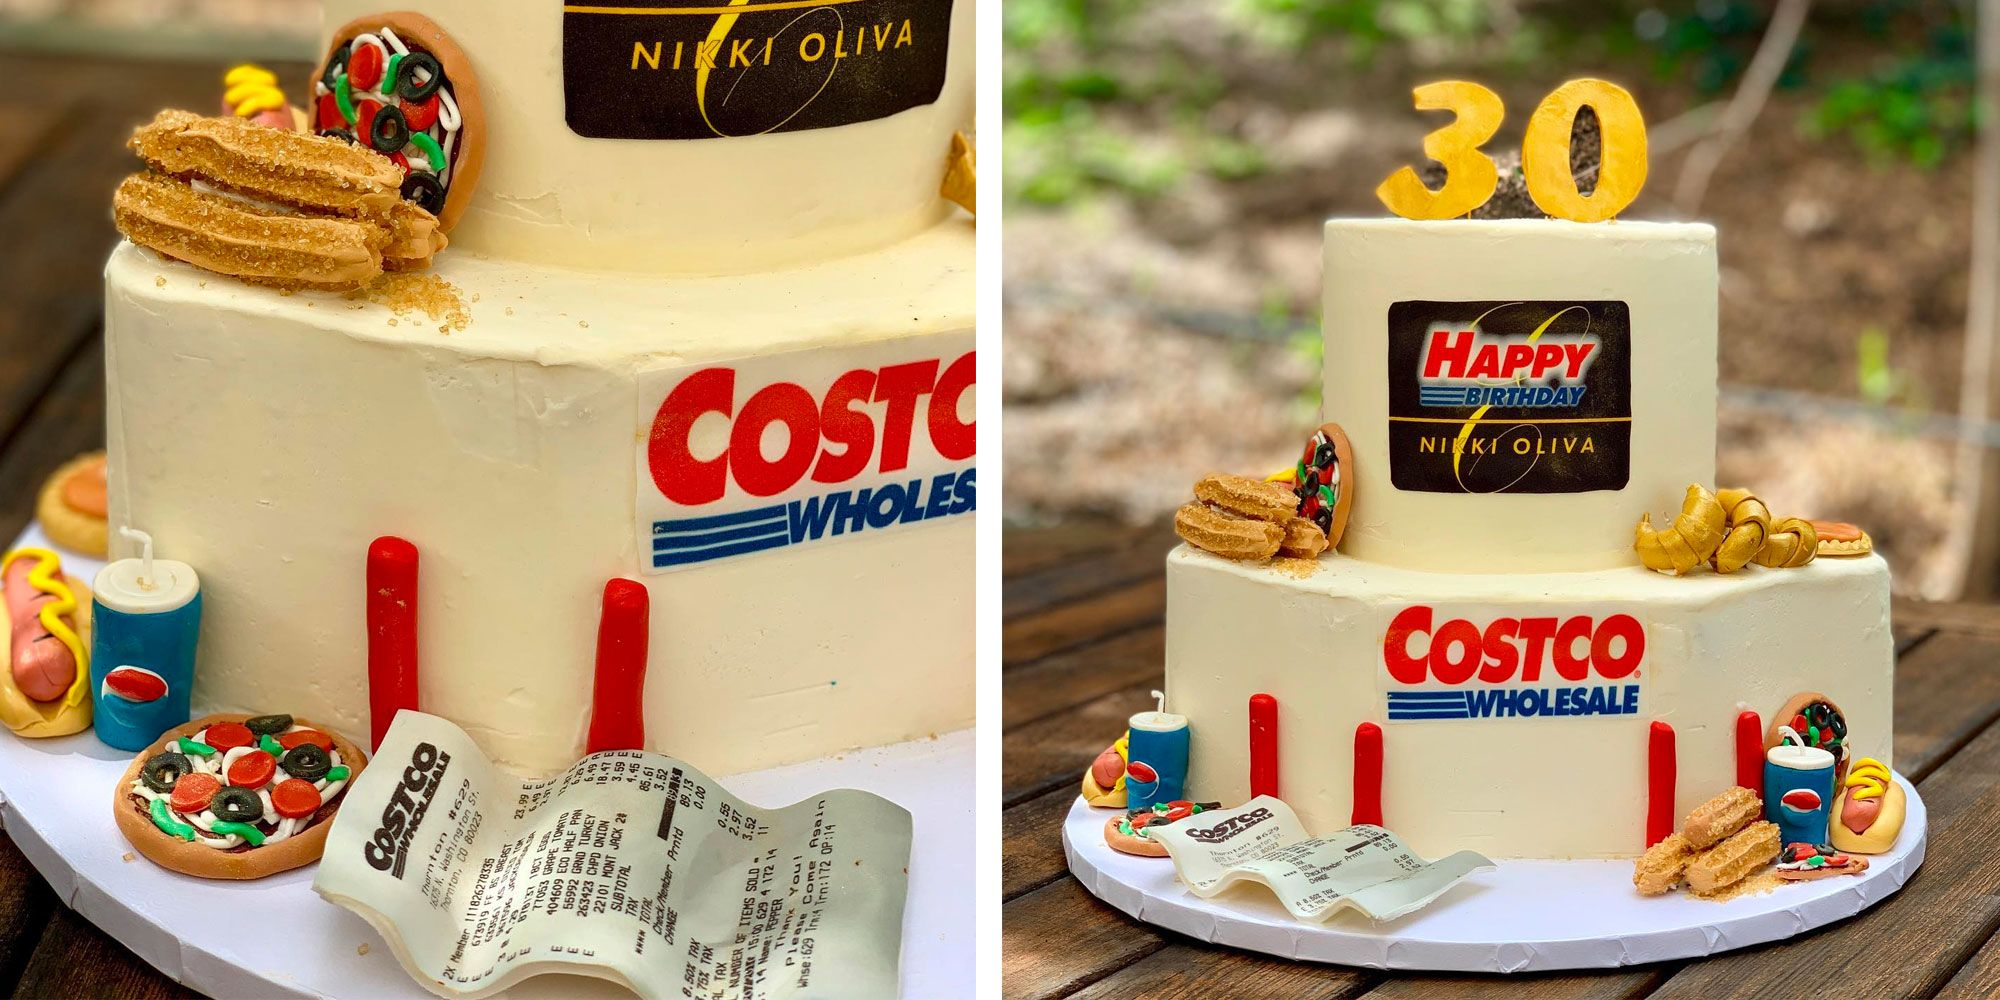 This Costco Birthday Cake Is So Spot On